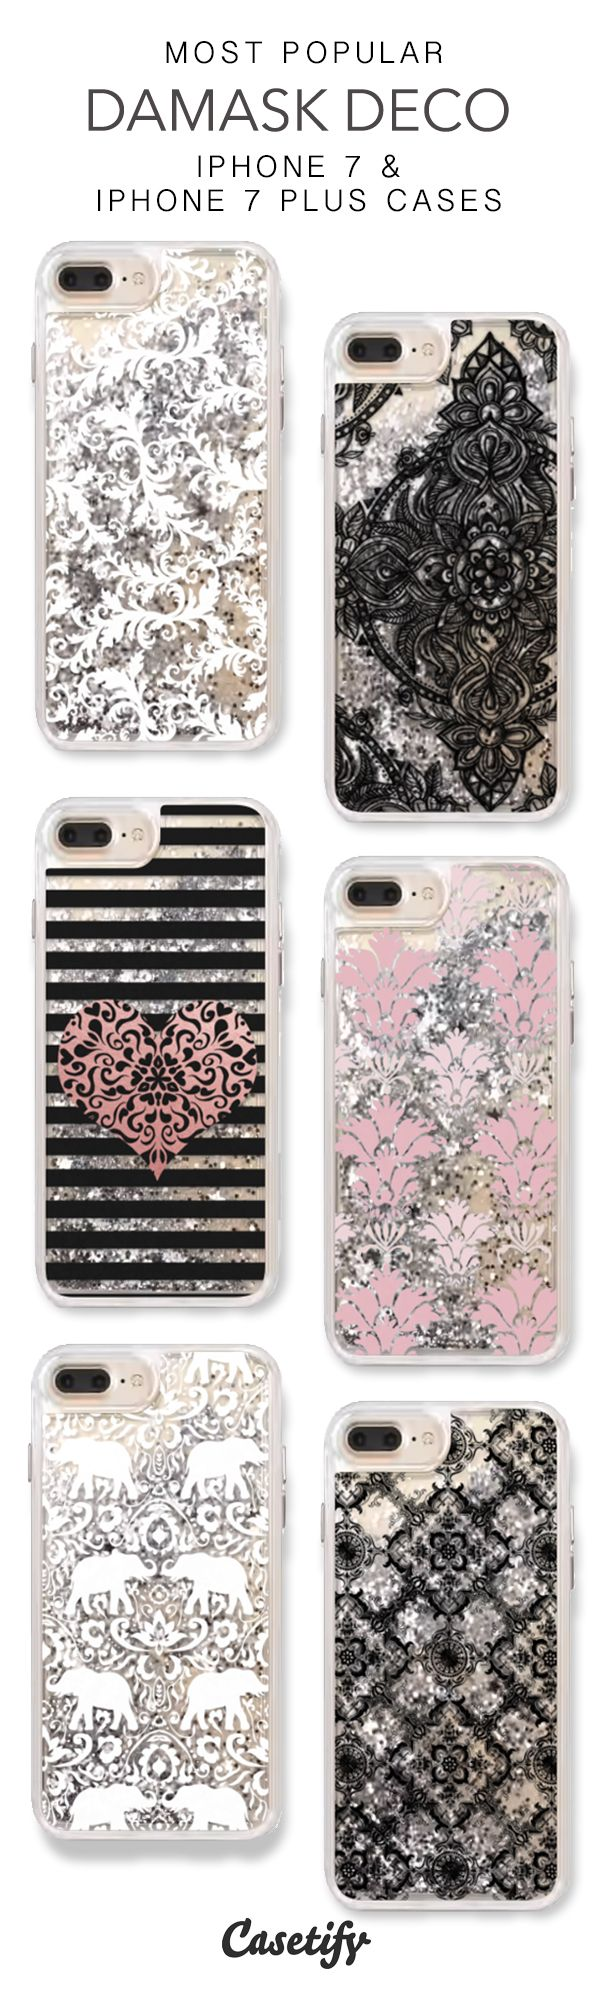 Most Popular Damask Deco iPhone 7 Cases & iPhone 7 Plus Cases. More protective liquid glitter iPhone case here > https://www.casetify.com/en_US/collections/iphone-7-glitter-cases#/?vc=WLUneAJnsS